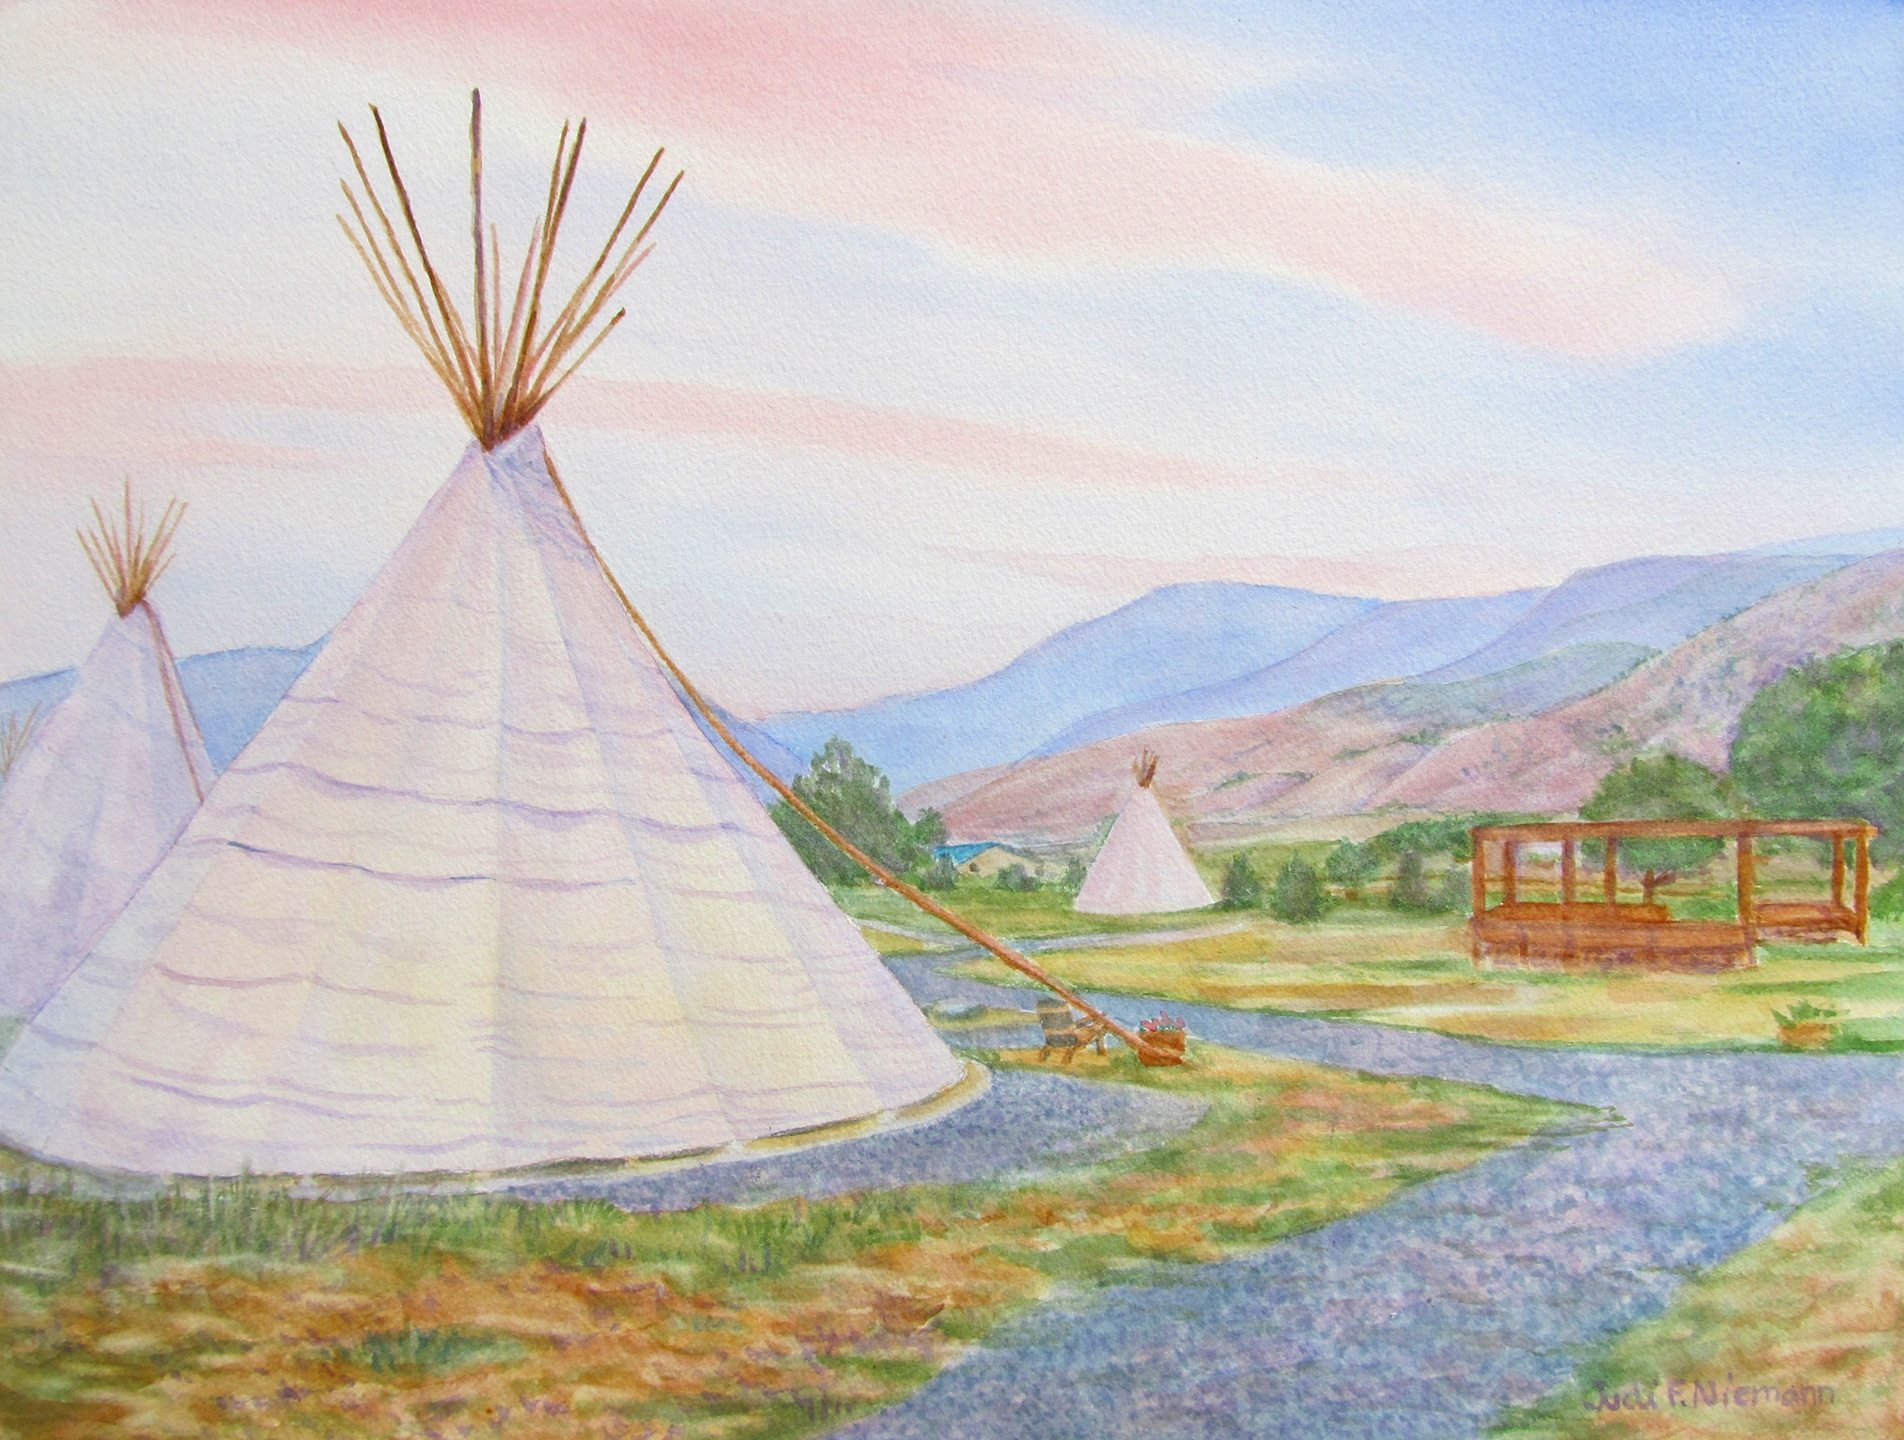 Dreamcatcher Tipi Hotel, Yellowstone